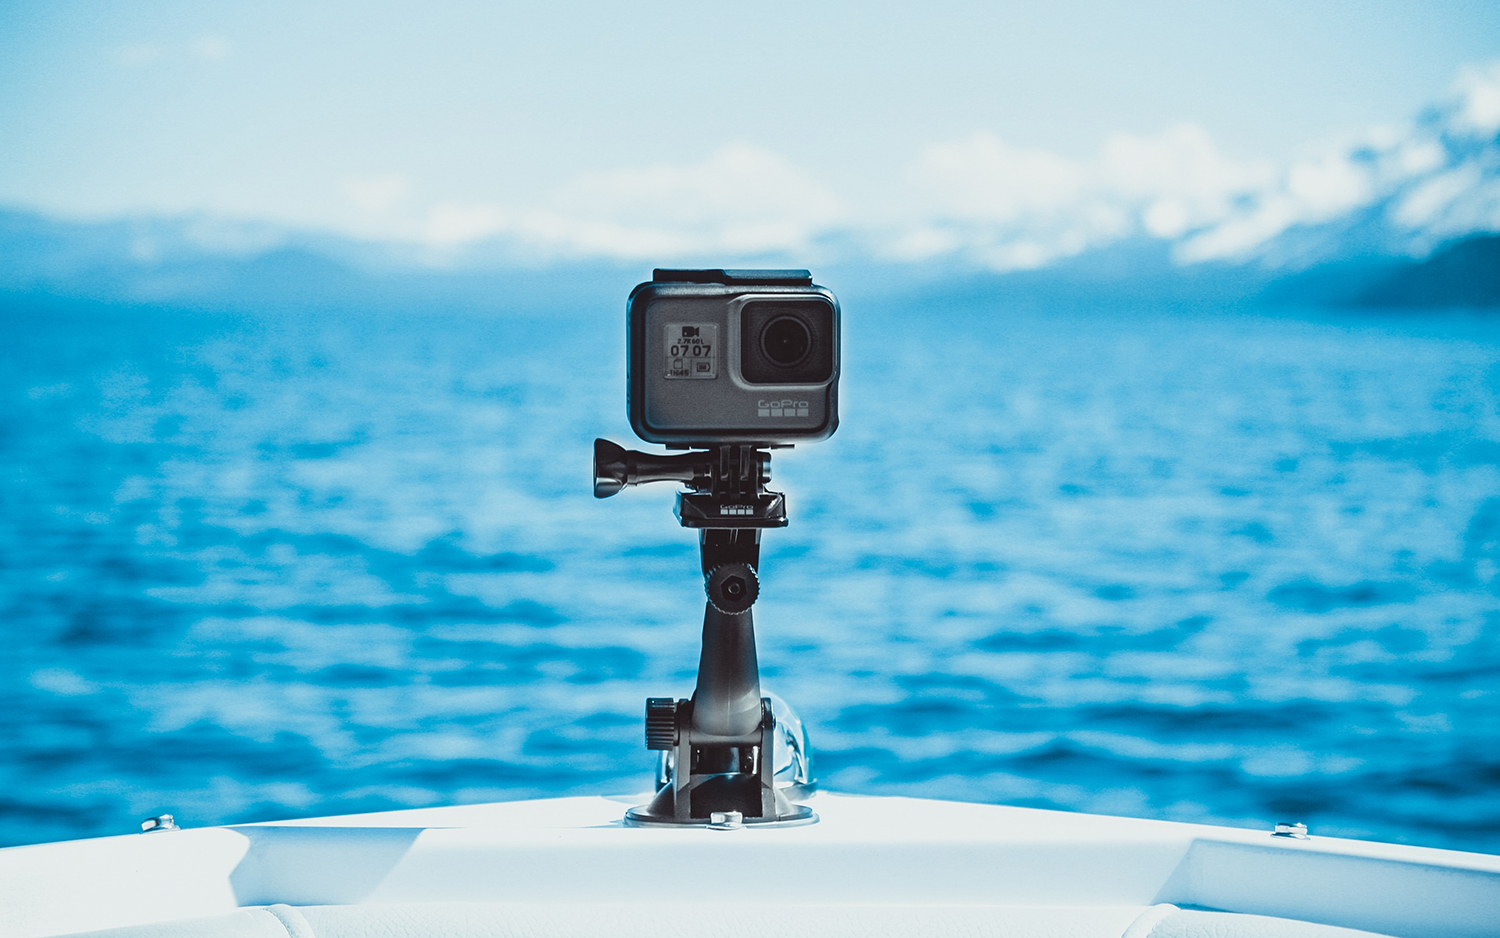 Best Inflatable Stand-Up Paddle Board GoPro Mounts